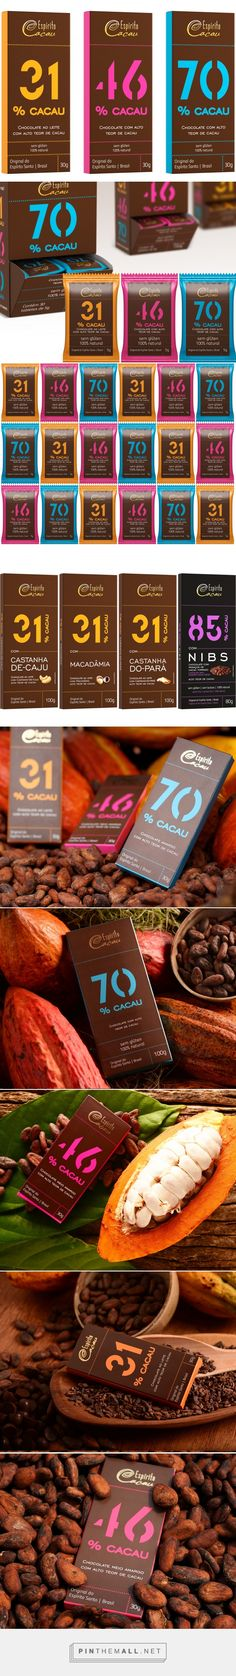 Espírito Cacau Chocolate - Packaging of the World - Creative Package Design Gallery - http://www.packagingoftheworld.com/2017/05/espirito-cacau-chocolate.html